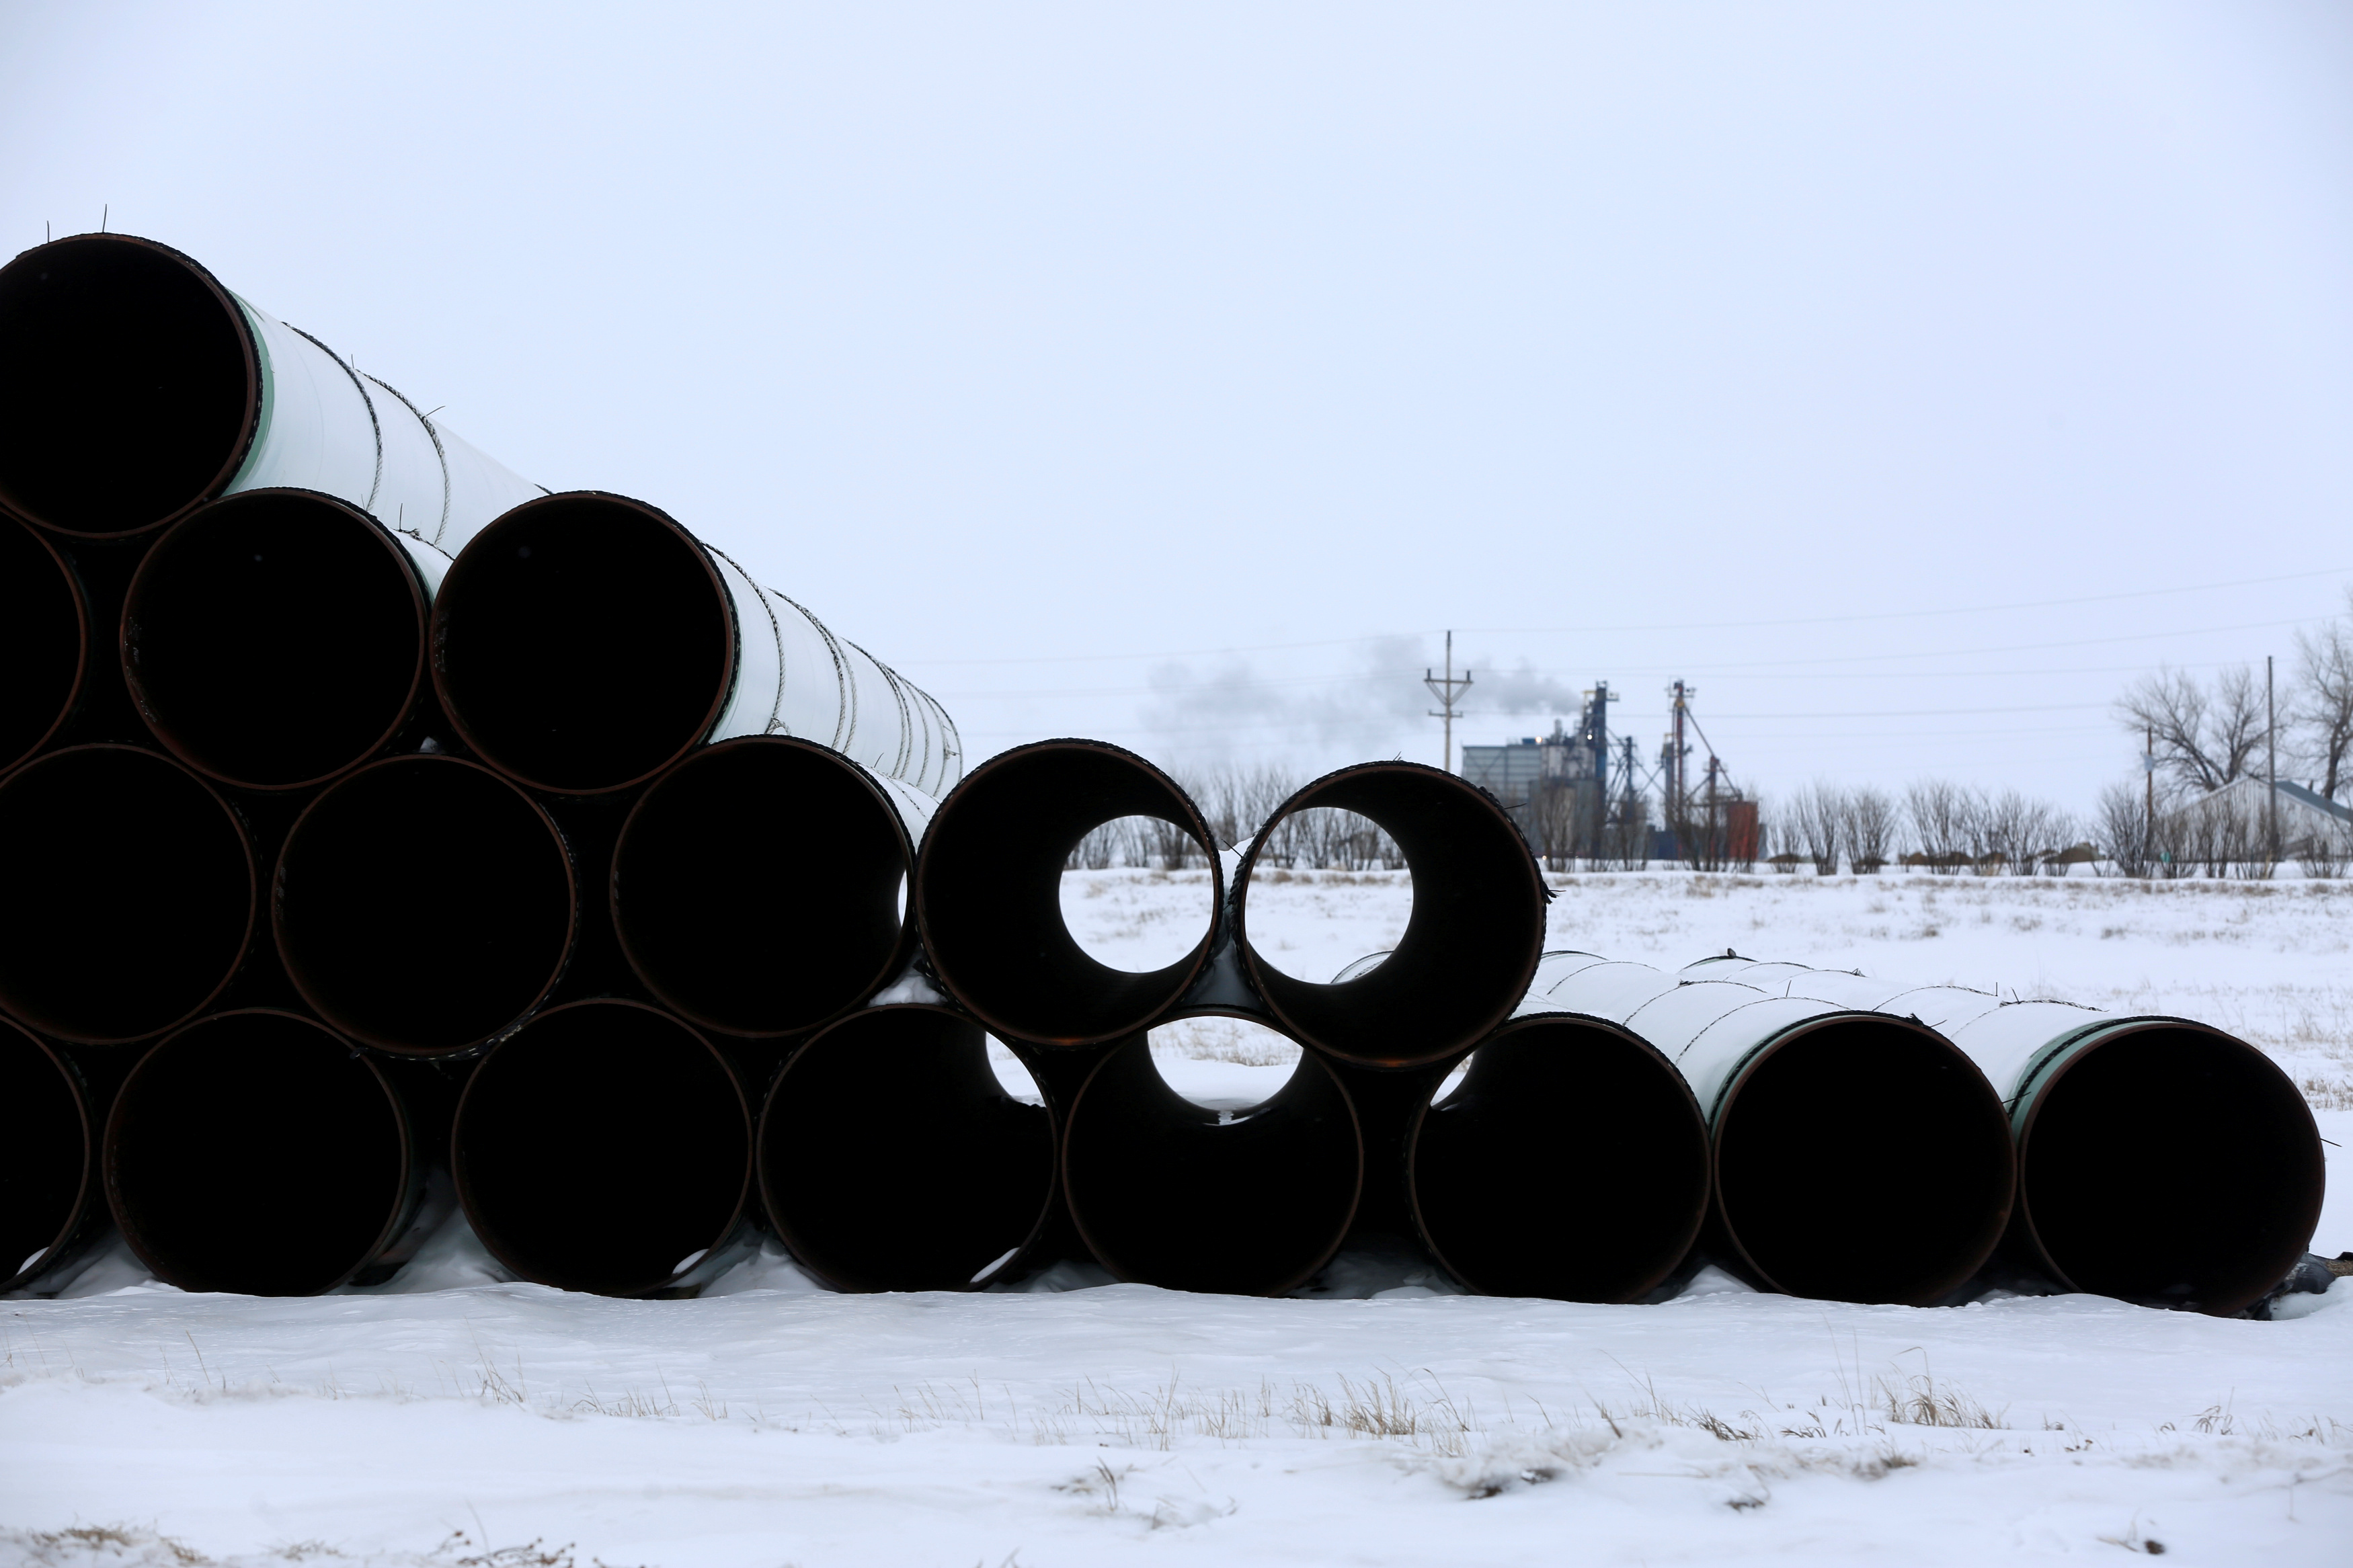 A depot used to store pipes for the planned Keystone XL oil pipeline is seen in Gascoyne, North Dakota, January 25, 2017.  REUTERS/Terray Sylvester/File Photo